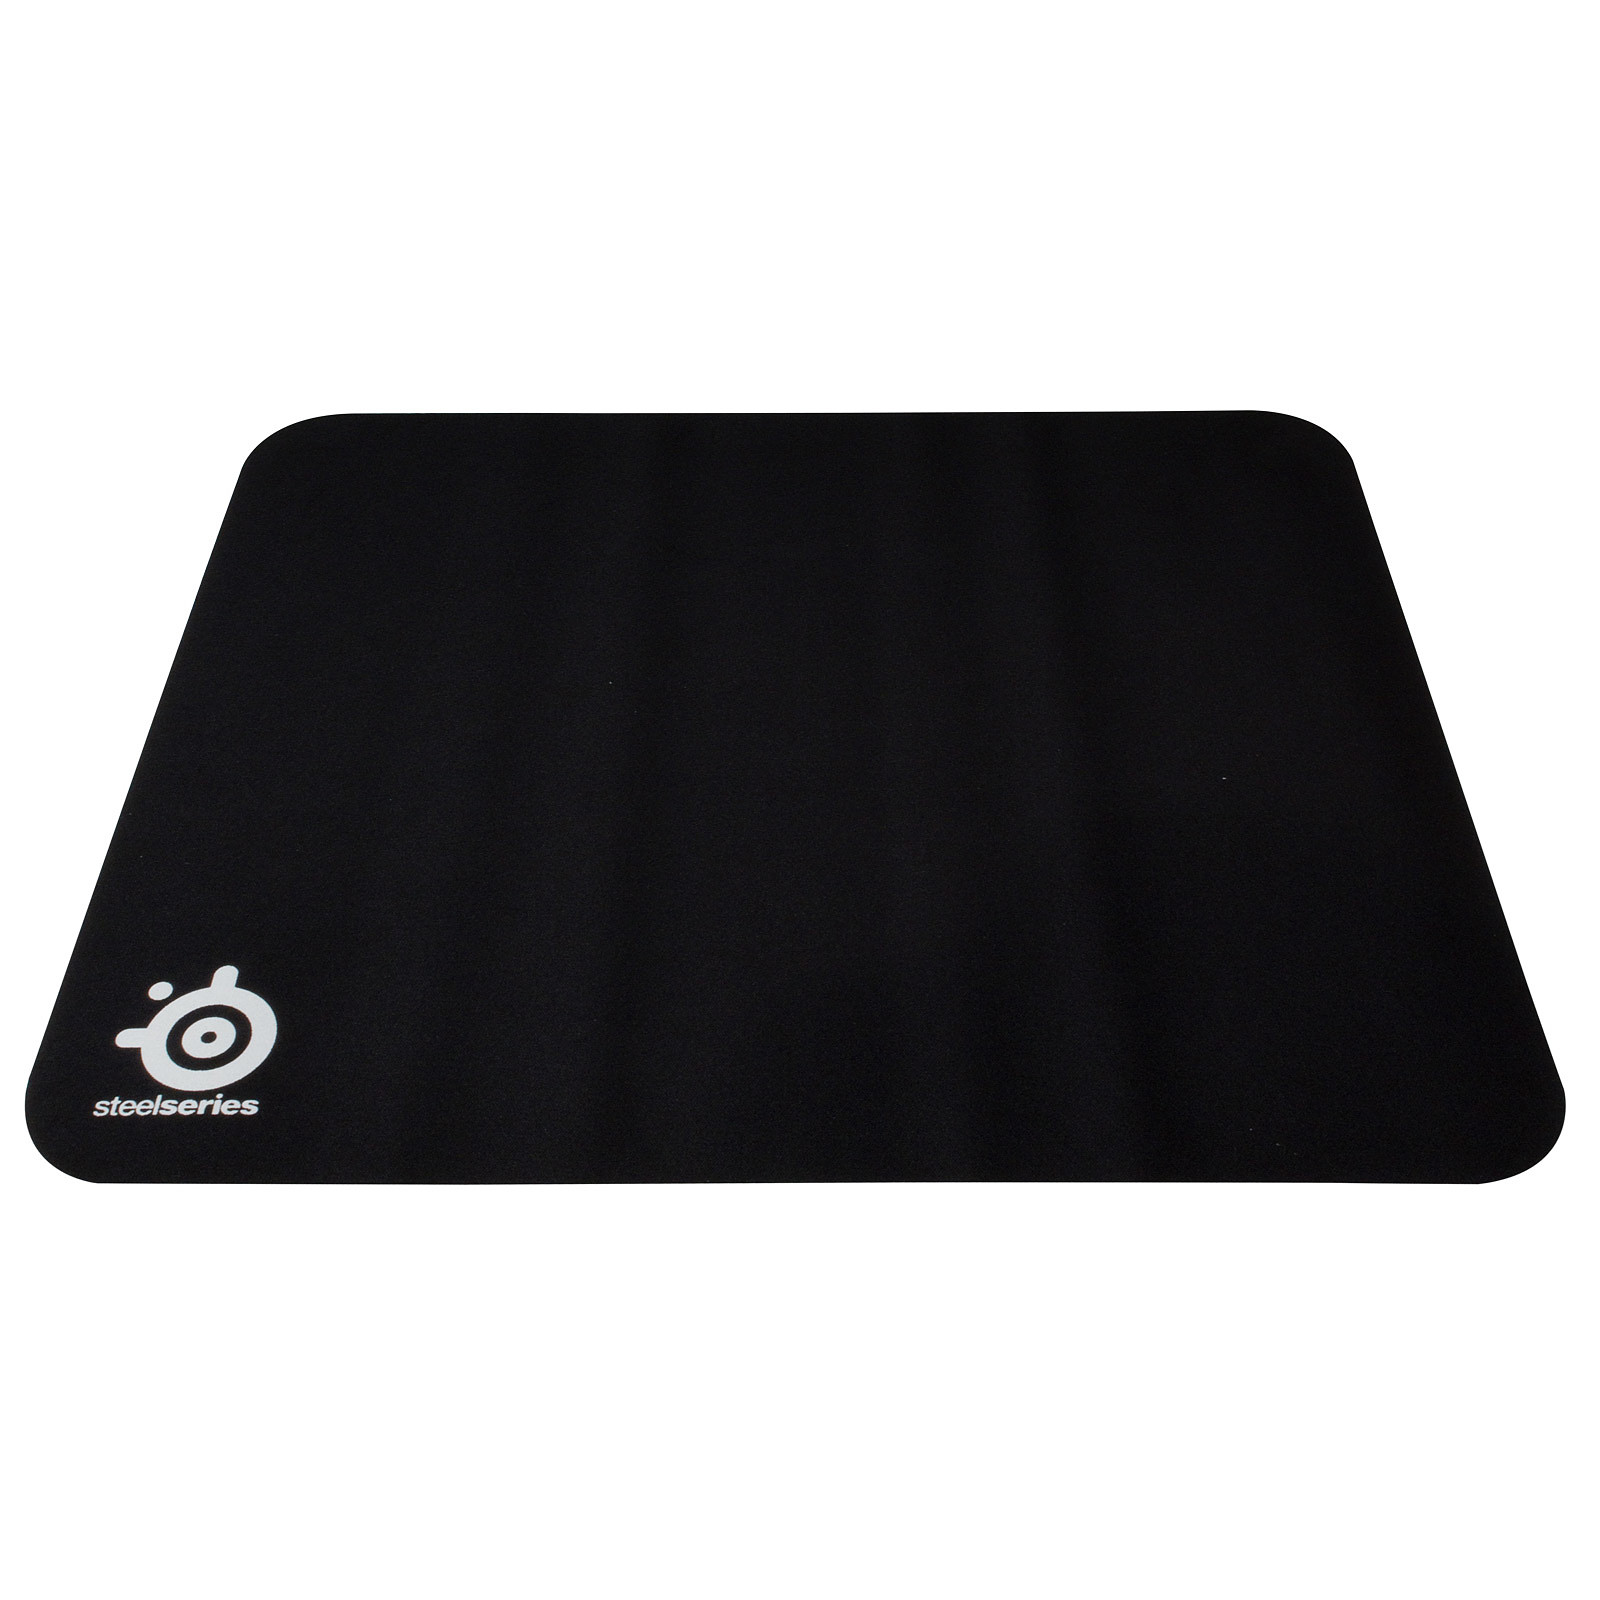 Steelseries qck tapis de souris steelseries sur - Steelseries tapis de souris ...